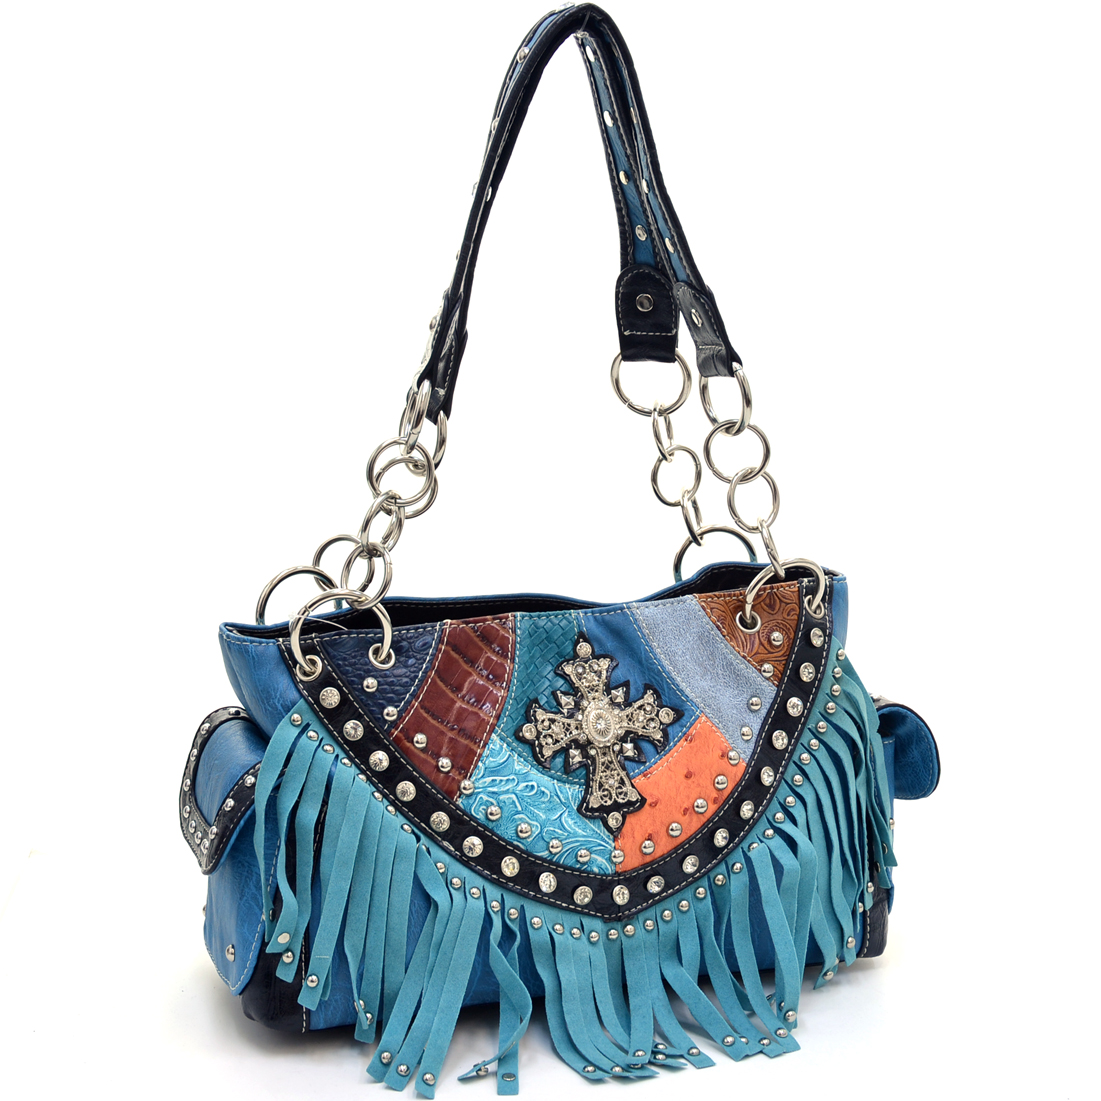 Western Studded Cross and Fringe Shoulder Bag